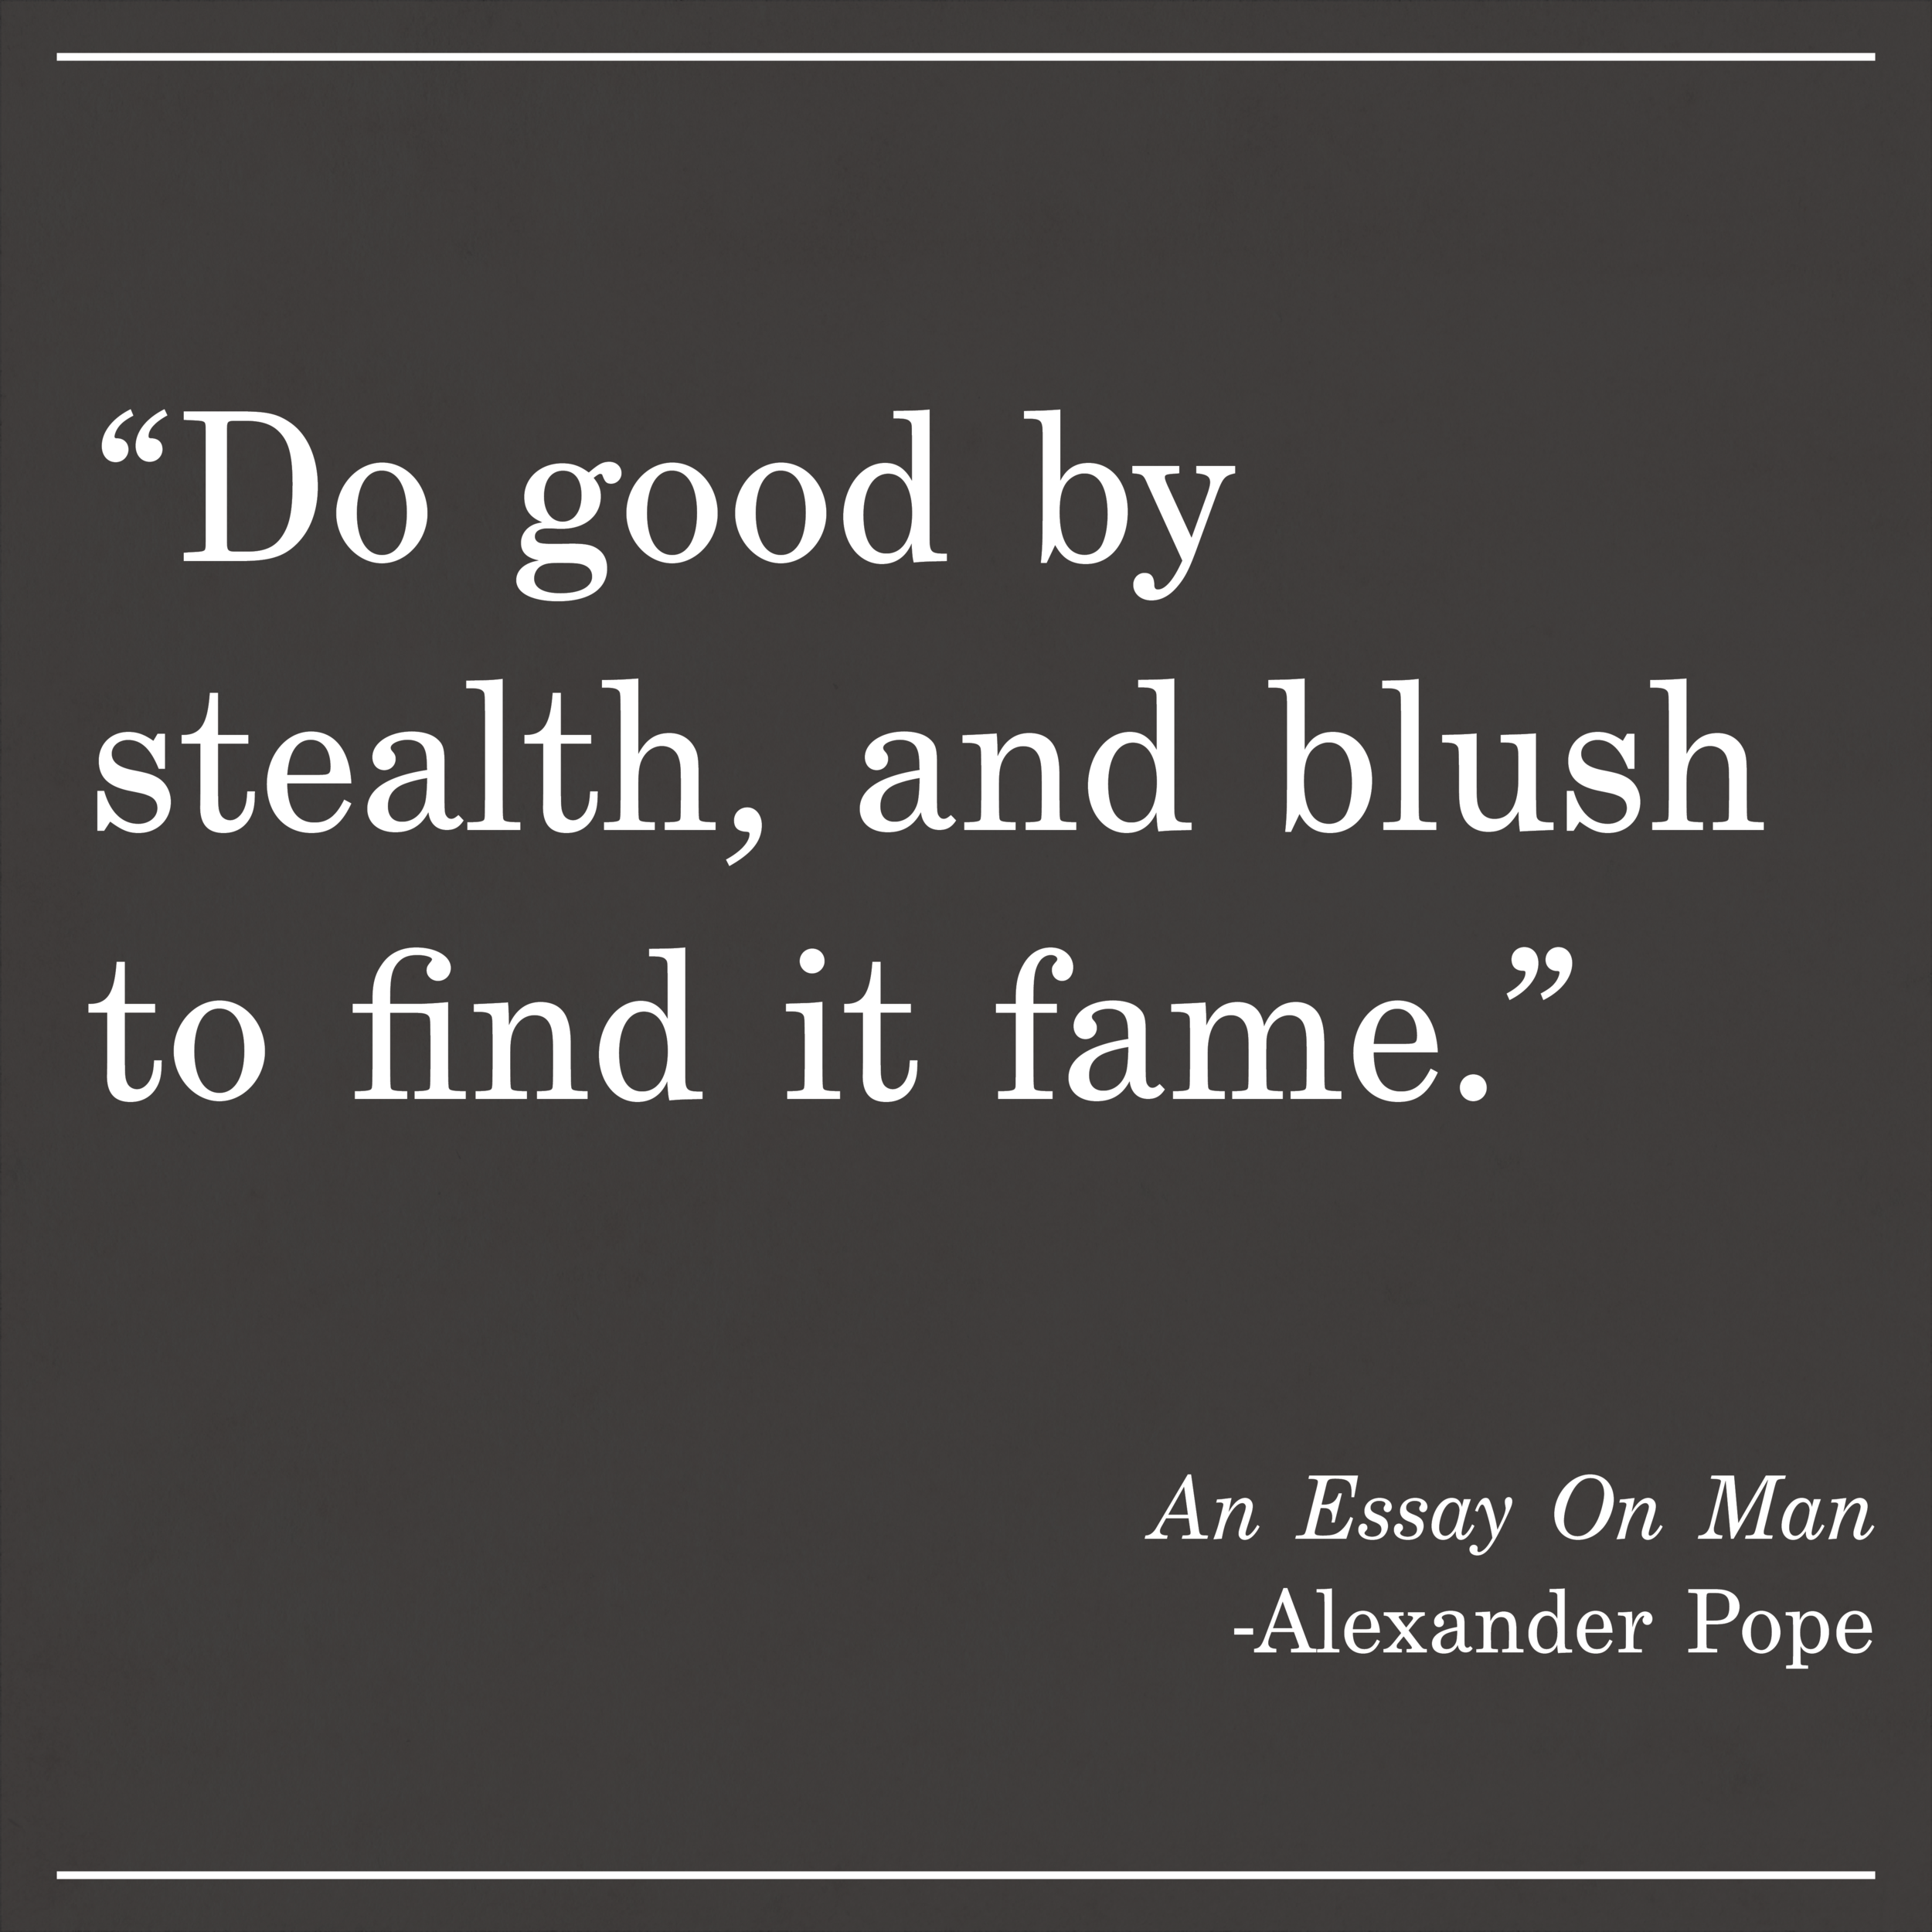 Daily Quote An Essay on Man by Alexander Pope